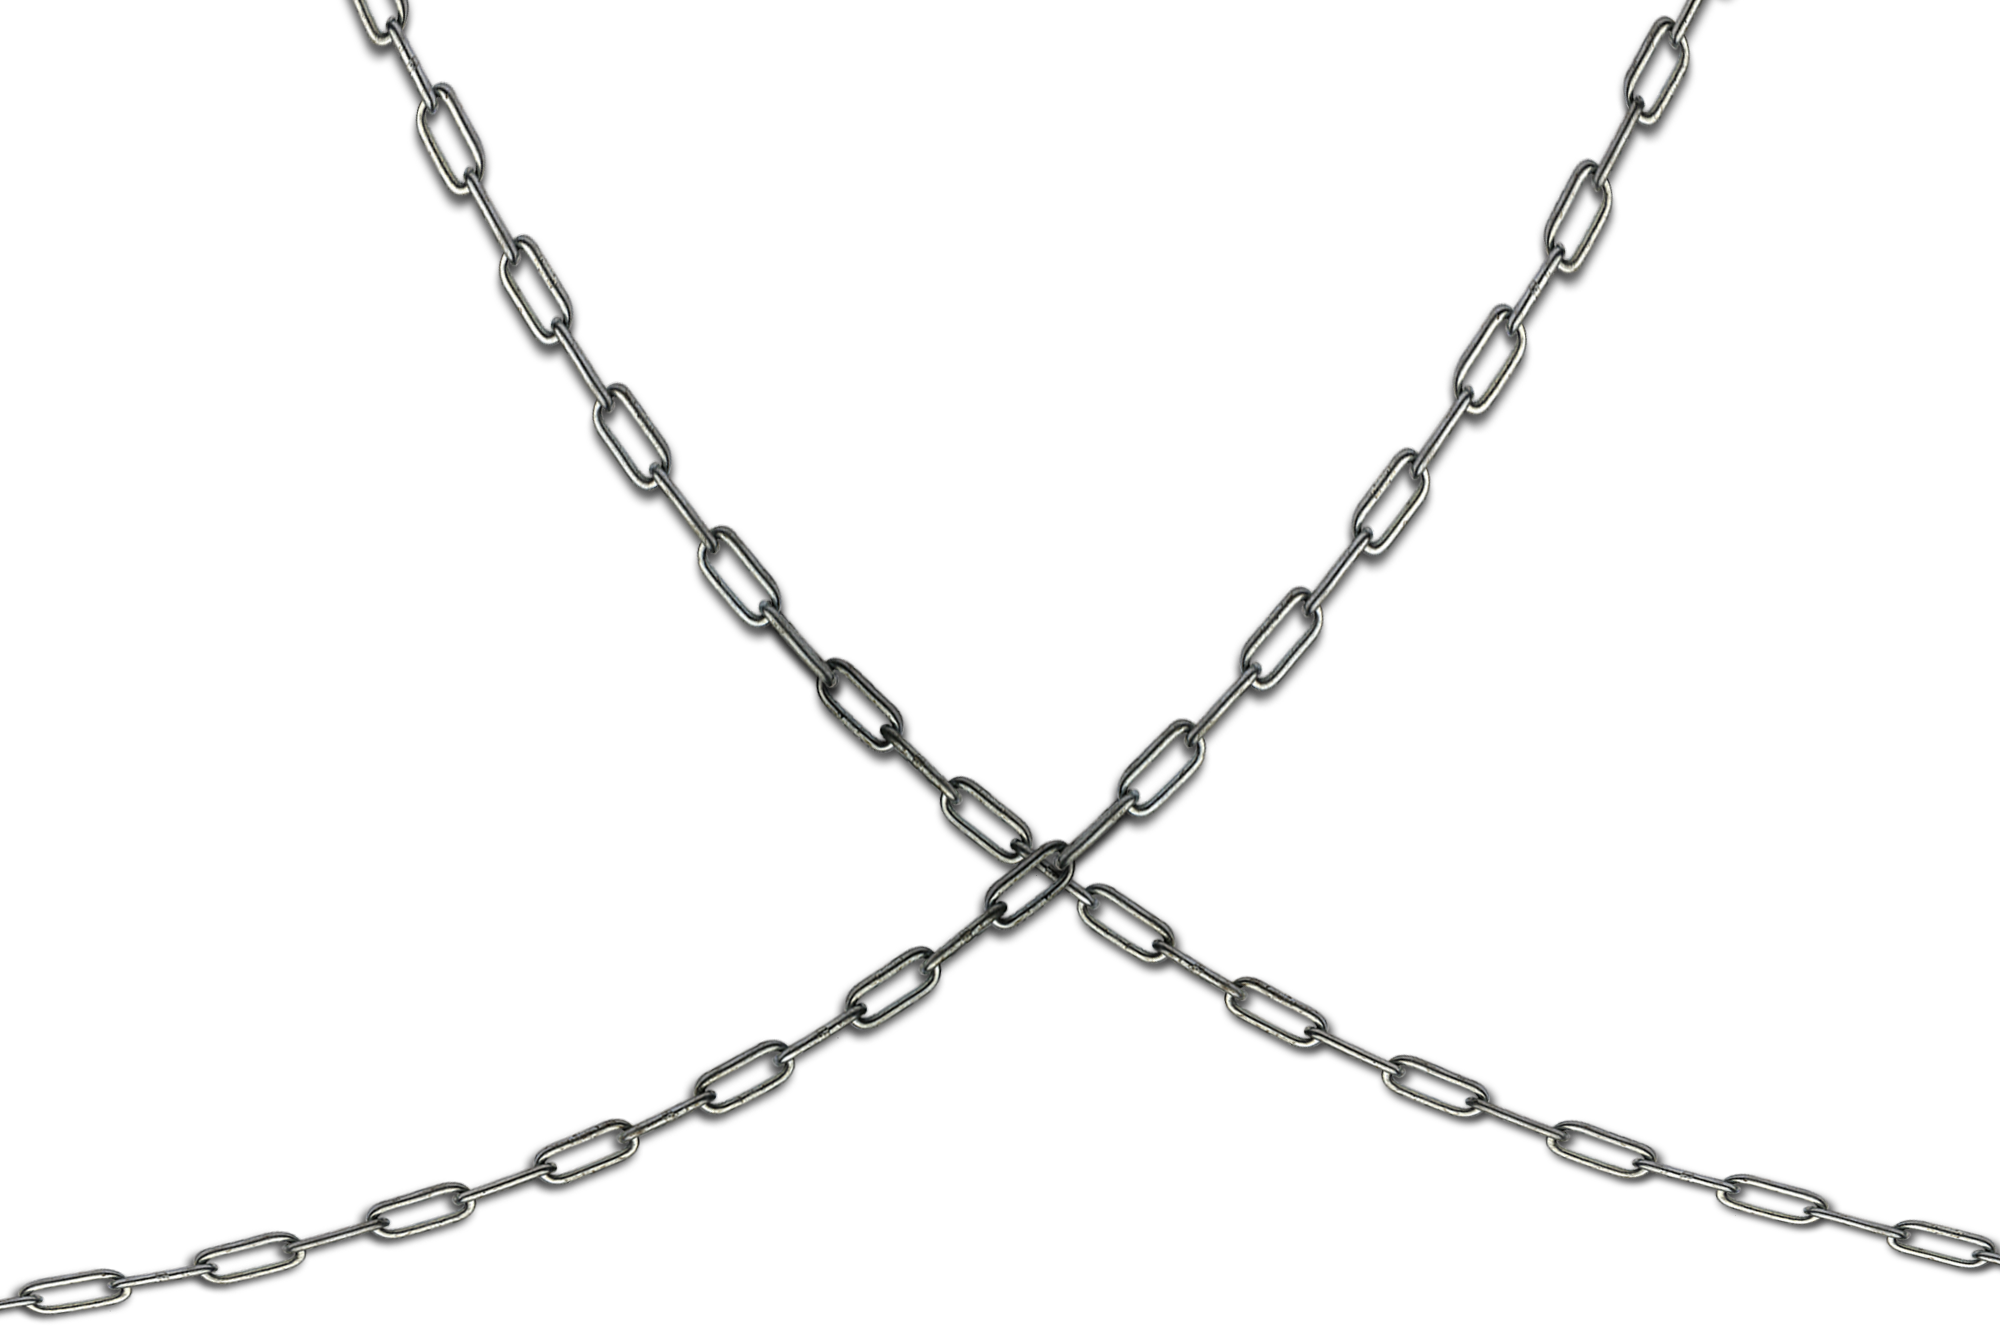 Chain High-Quality Png PNG Image